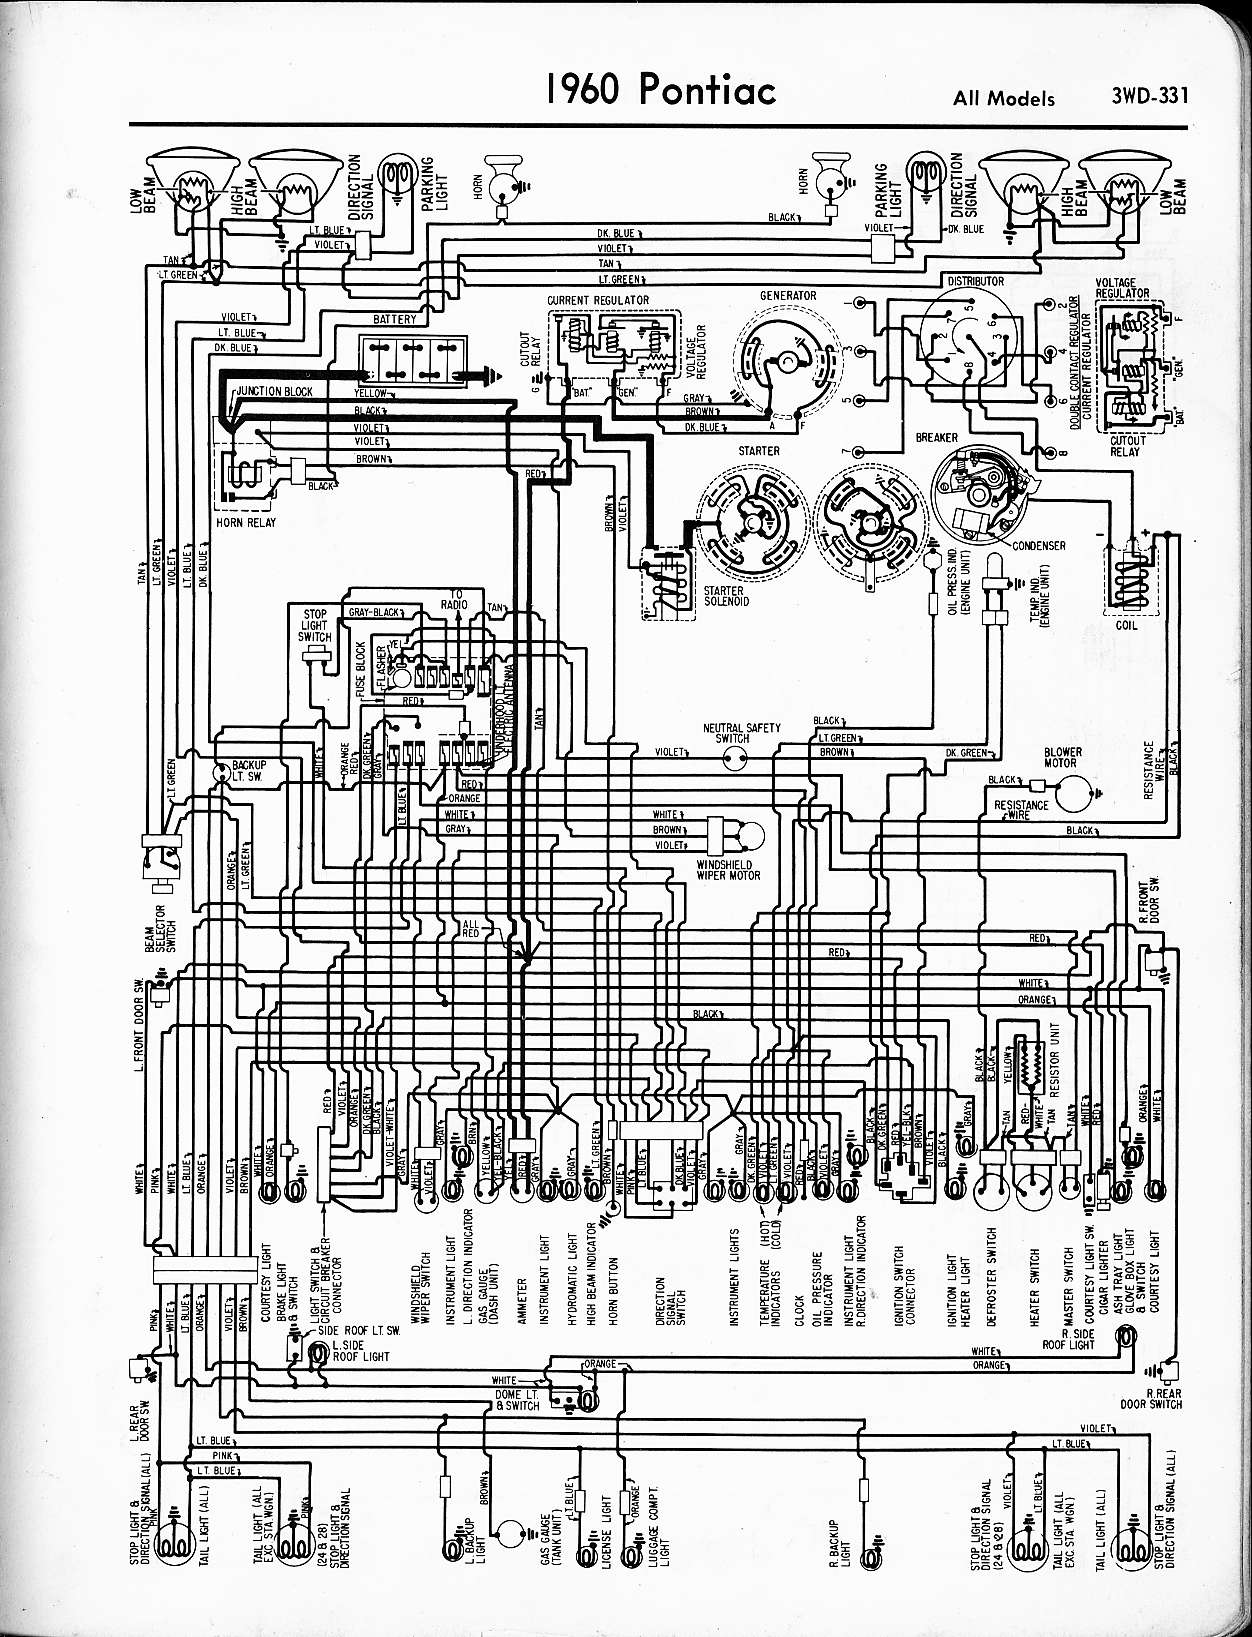 1966 pontiac bonneville wiring diagram wiring diagram rh blaknwyt co 1965 Catalina 1971 Catalina